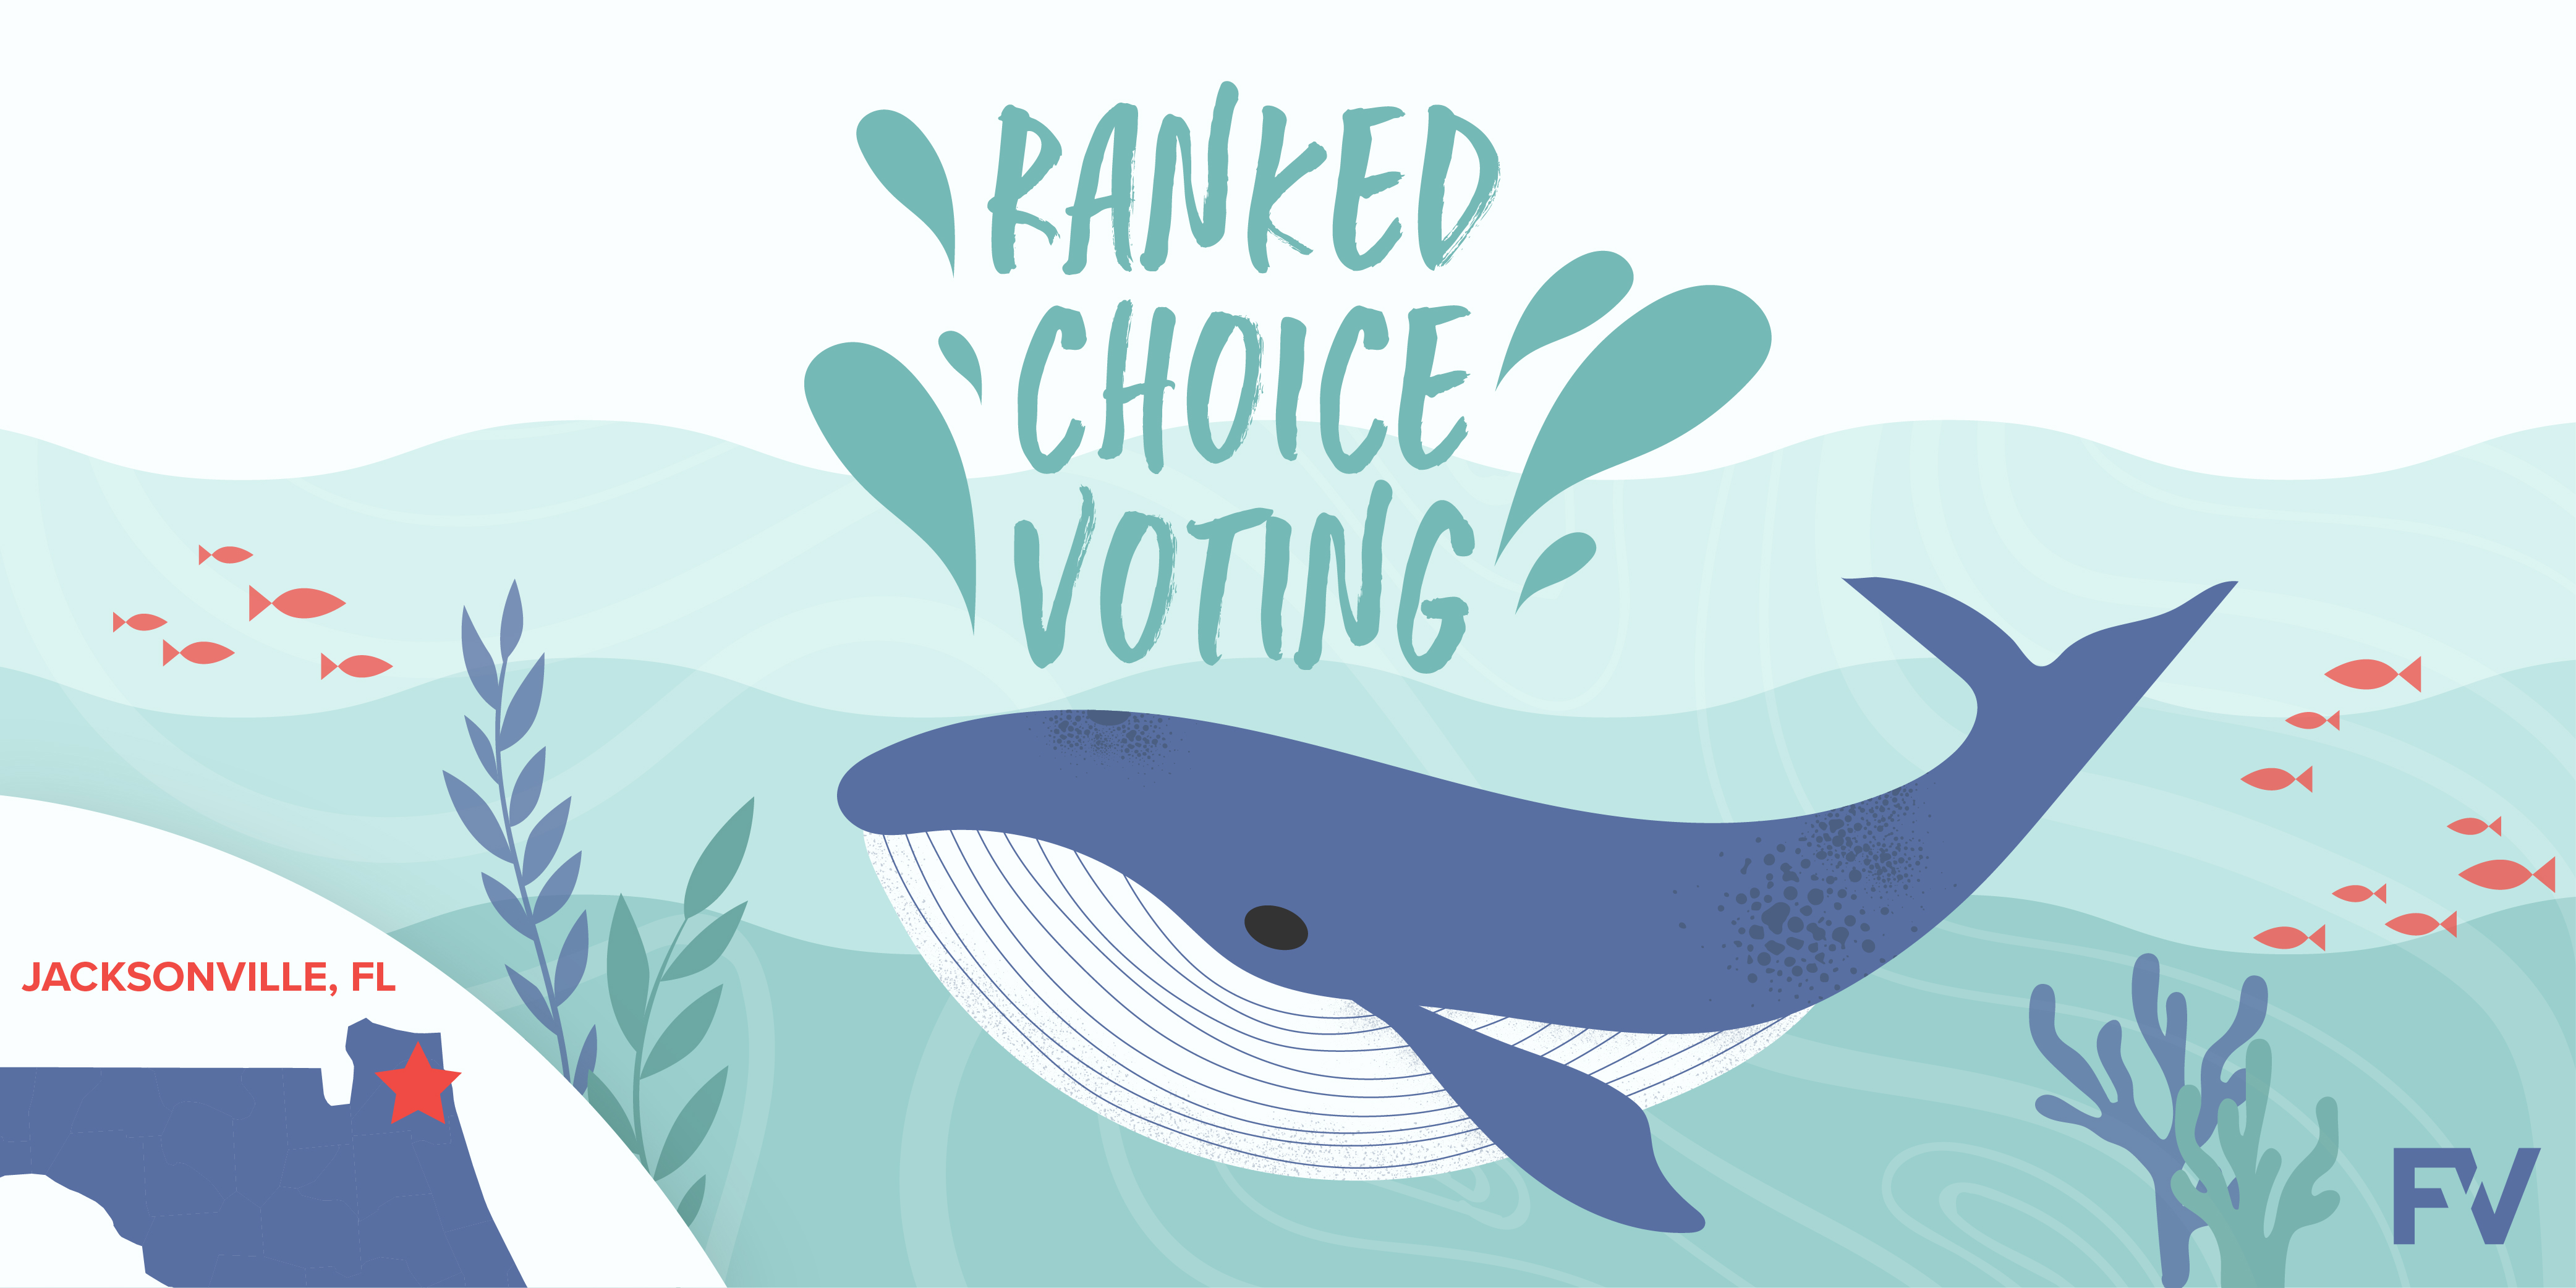 The Fastest Route To Nationwide Use Of Ranked Choice Voting Goes Through Jacksonville